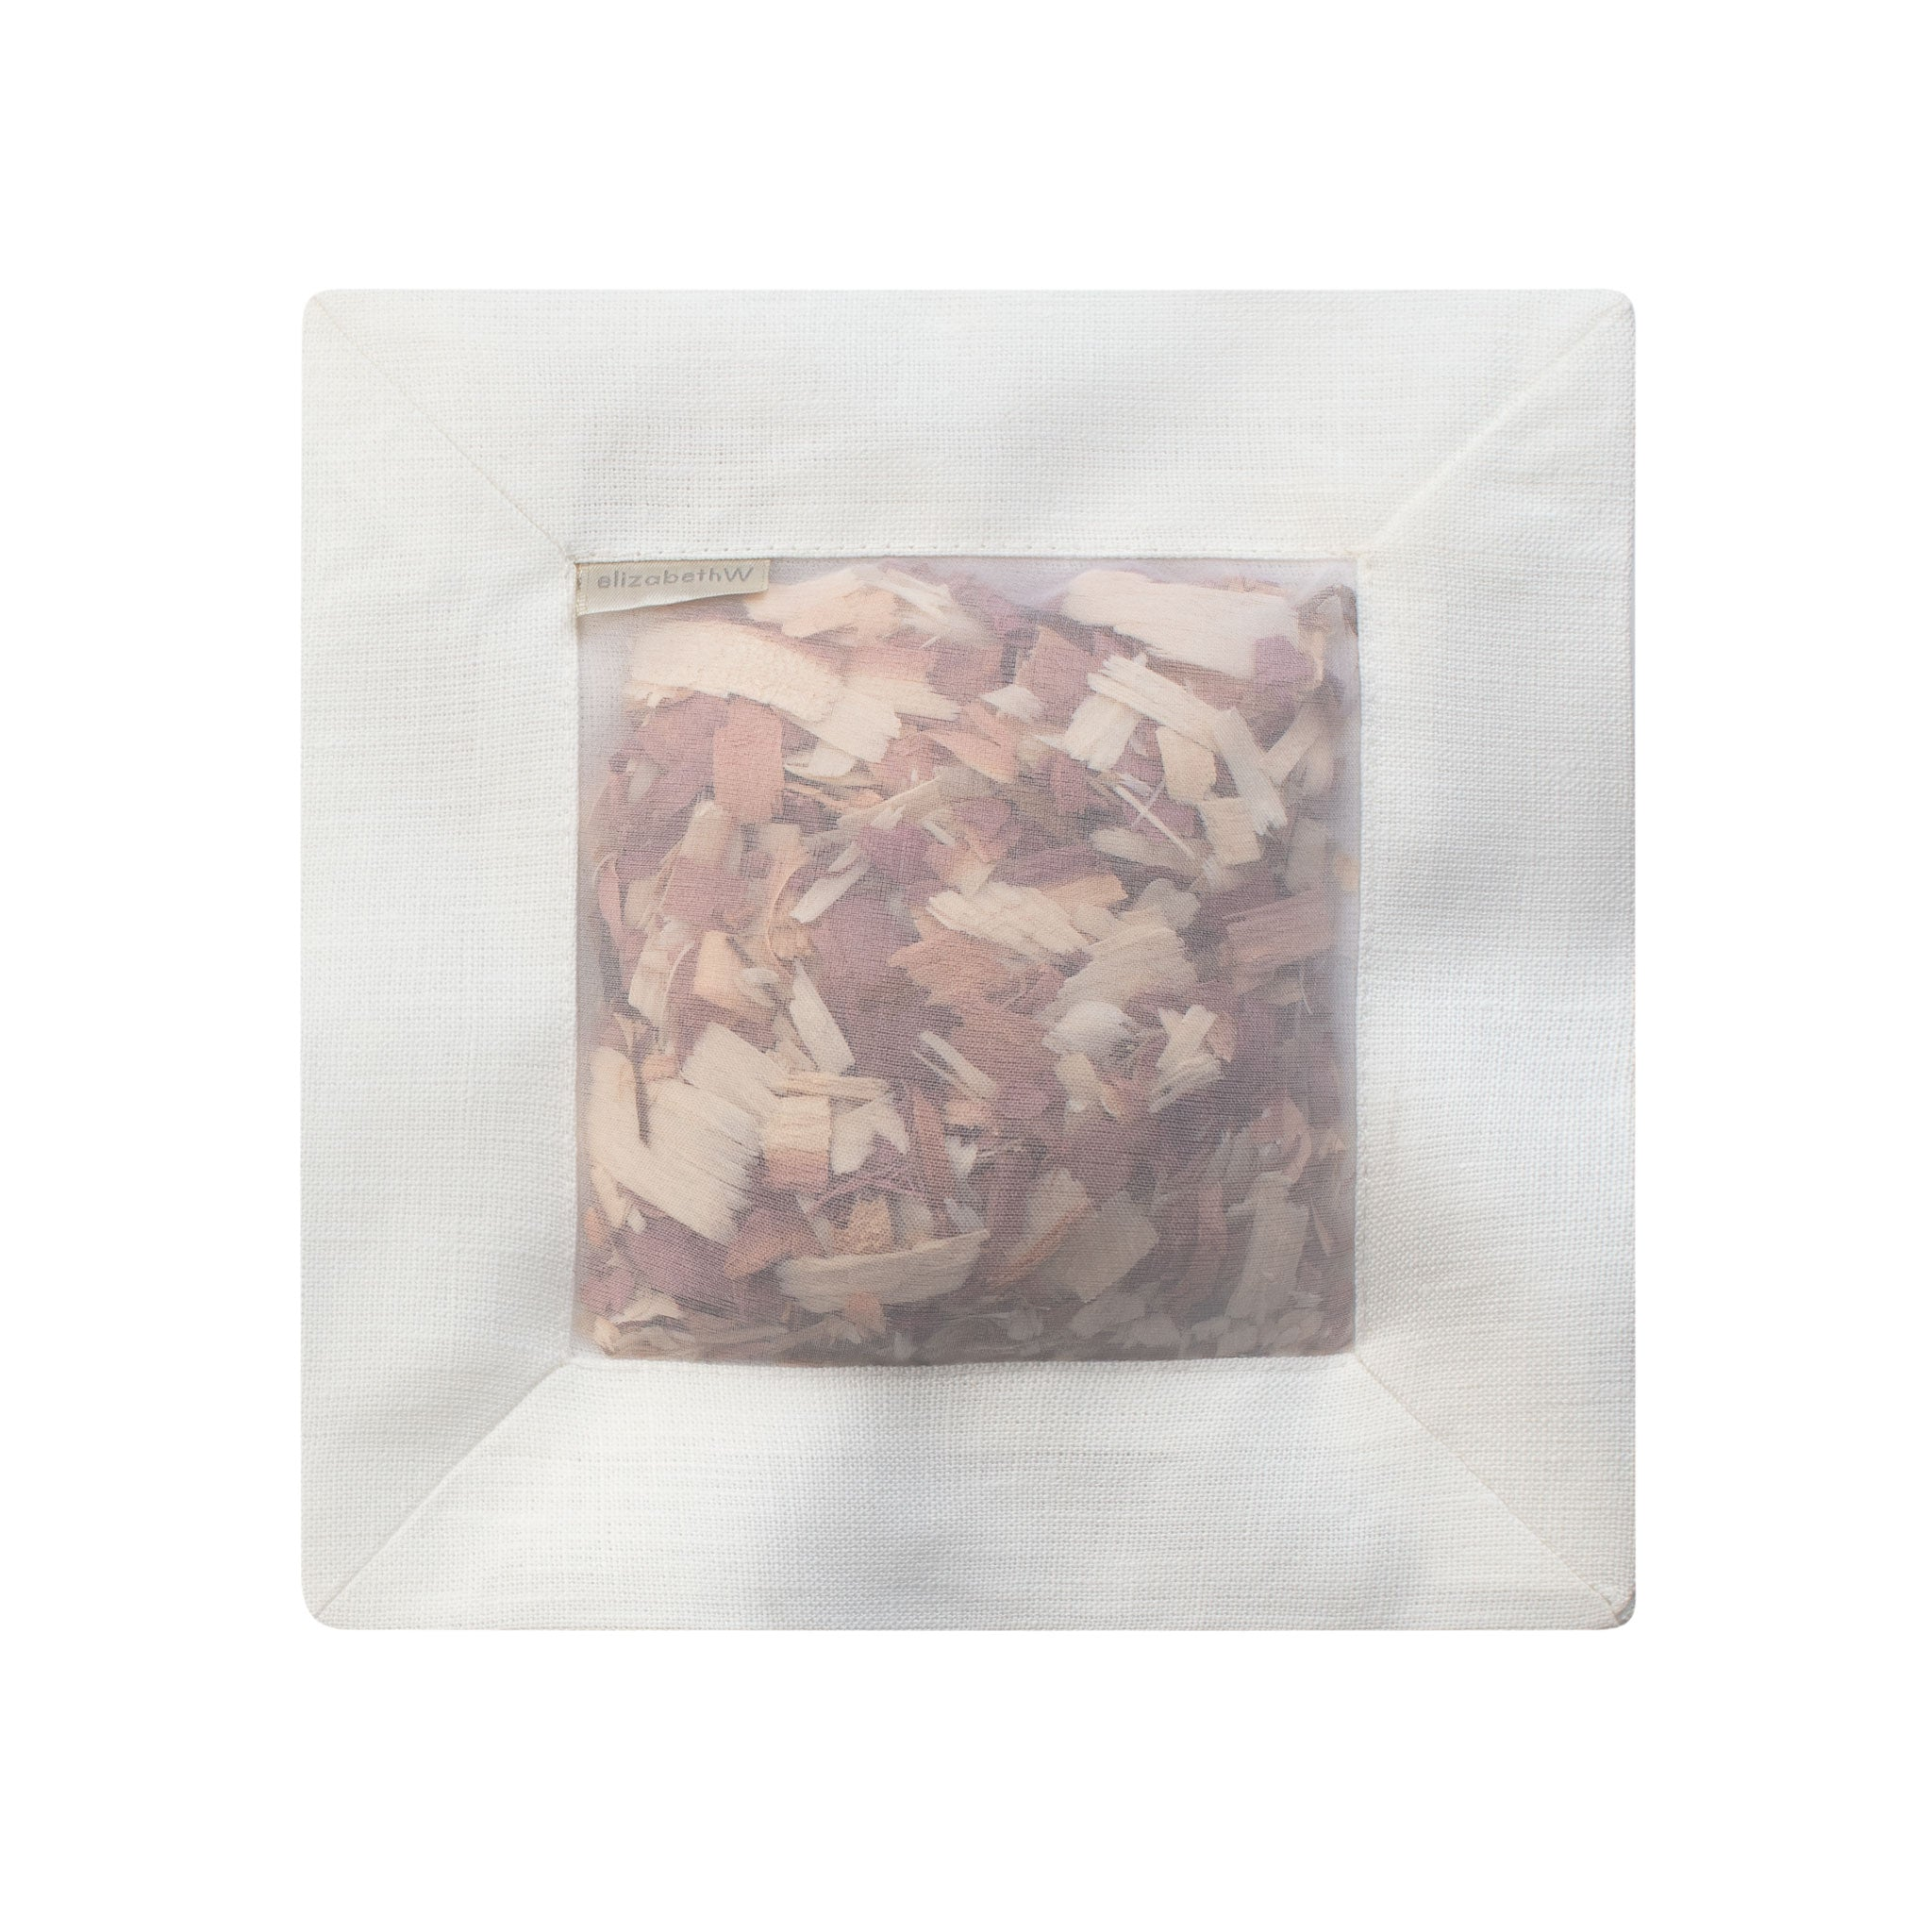 Cedar filled inside of an ivory colored square sachet with a transparent screen